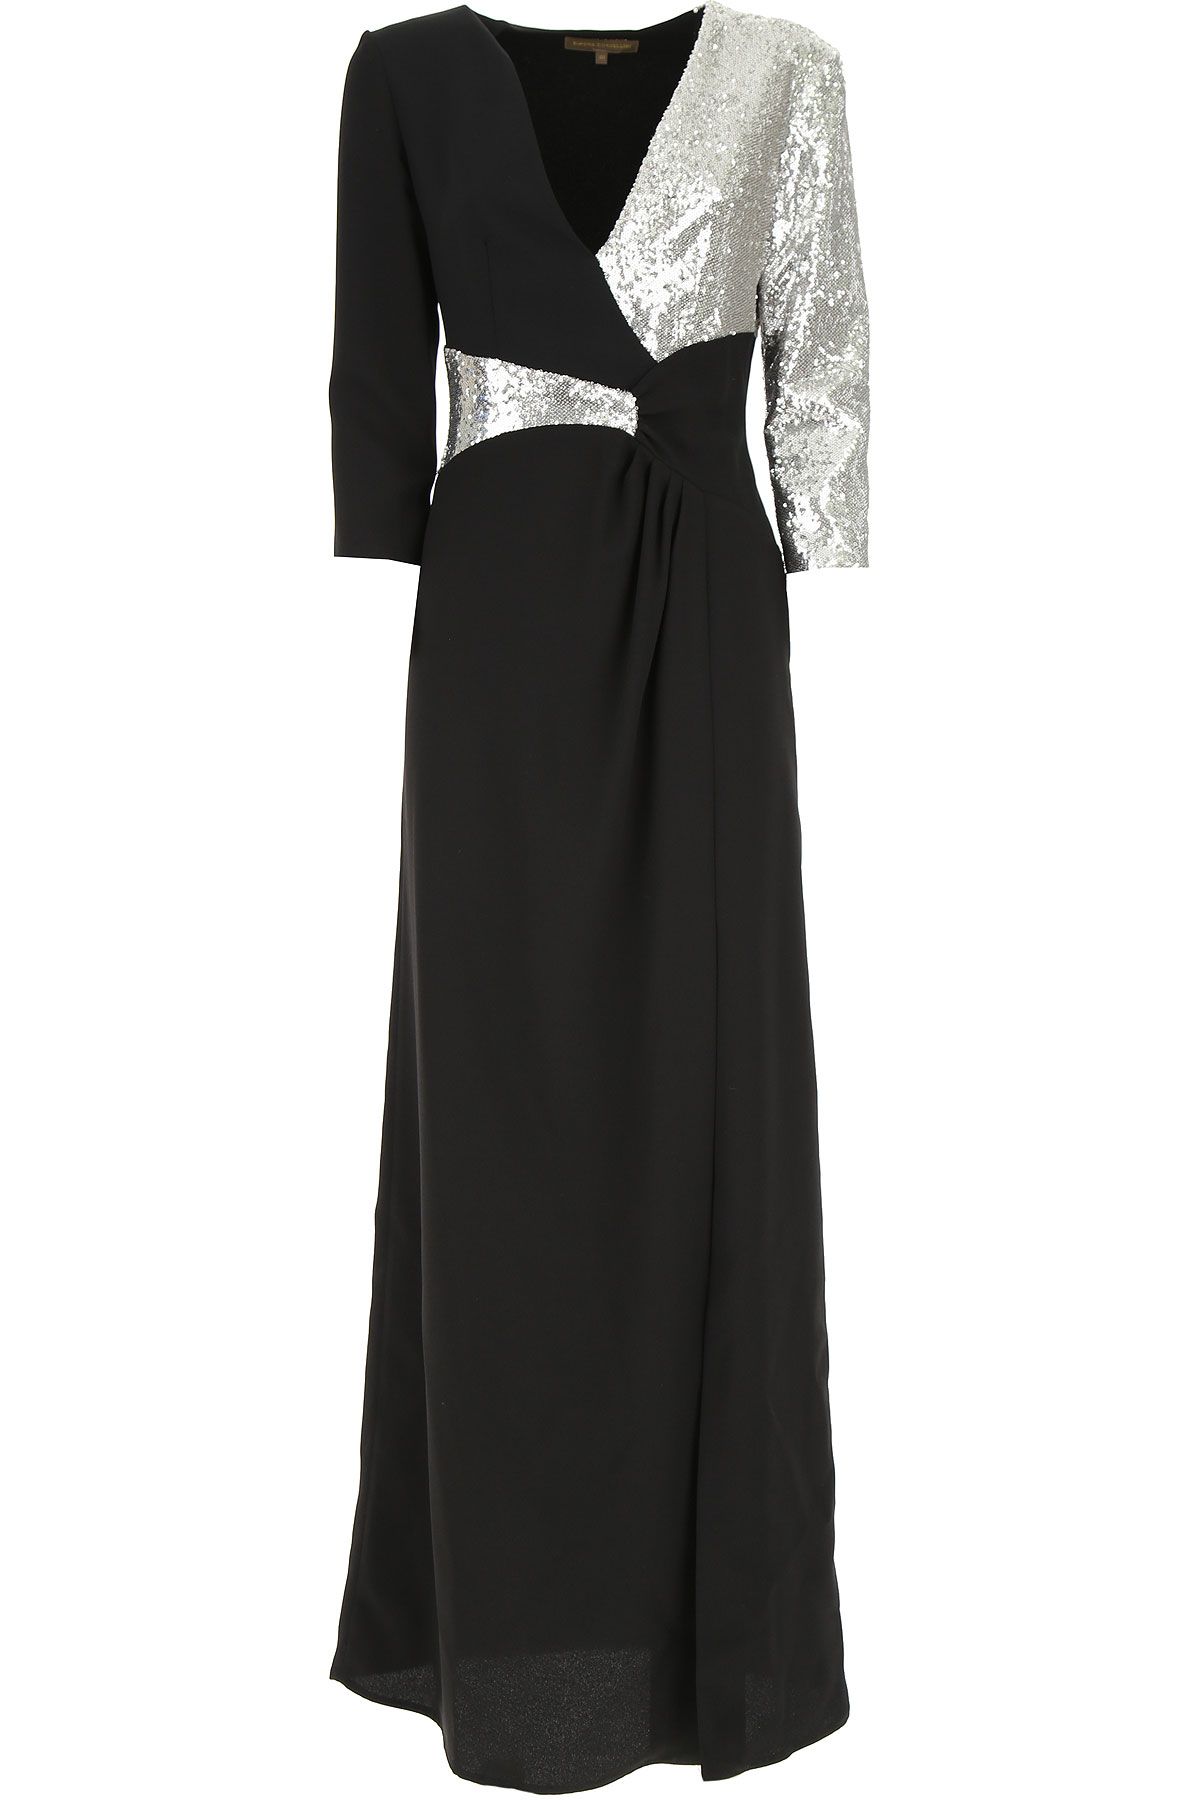 Simona Corsellini Dress for Women, Evening Cocktail Party On Sale, Black, polyestere, 2019, 2 6